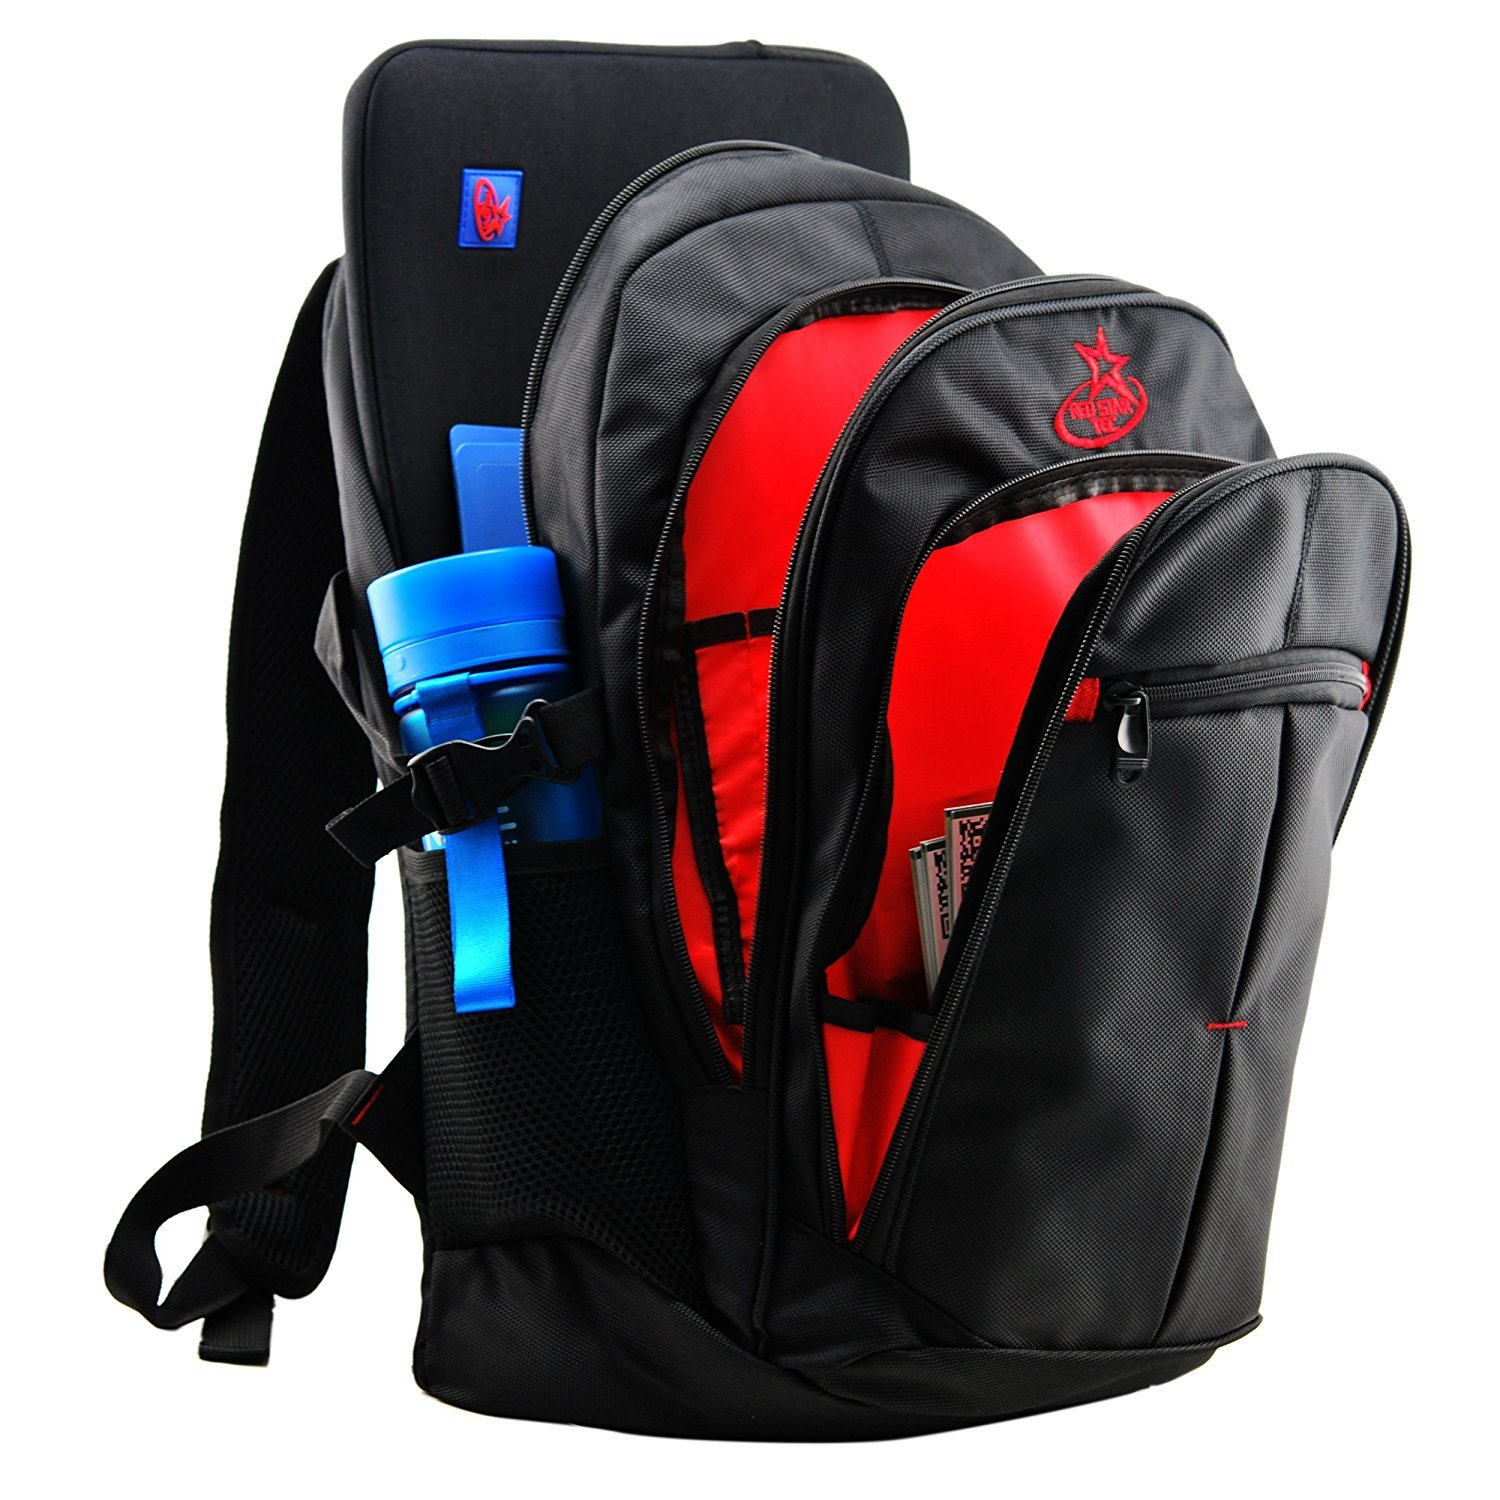 RedStarTec 17 Inch Laptop Backpack Computer Bag – With 15.6 in Laptop Sleeve